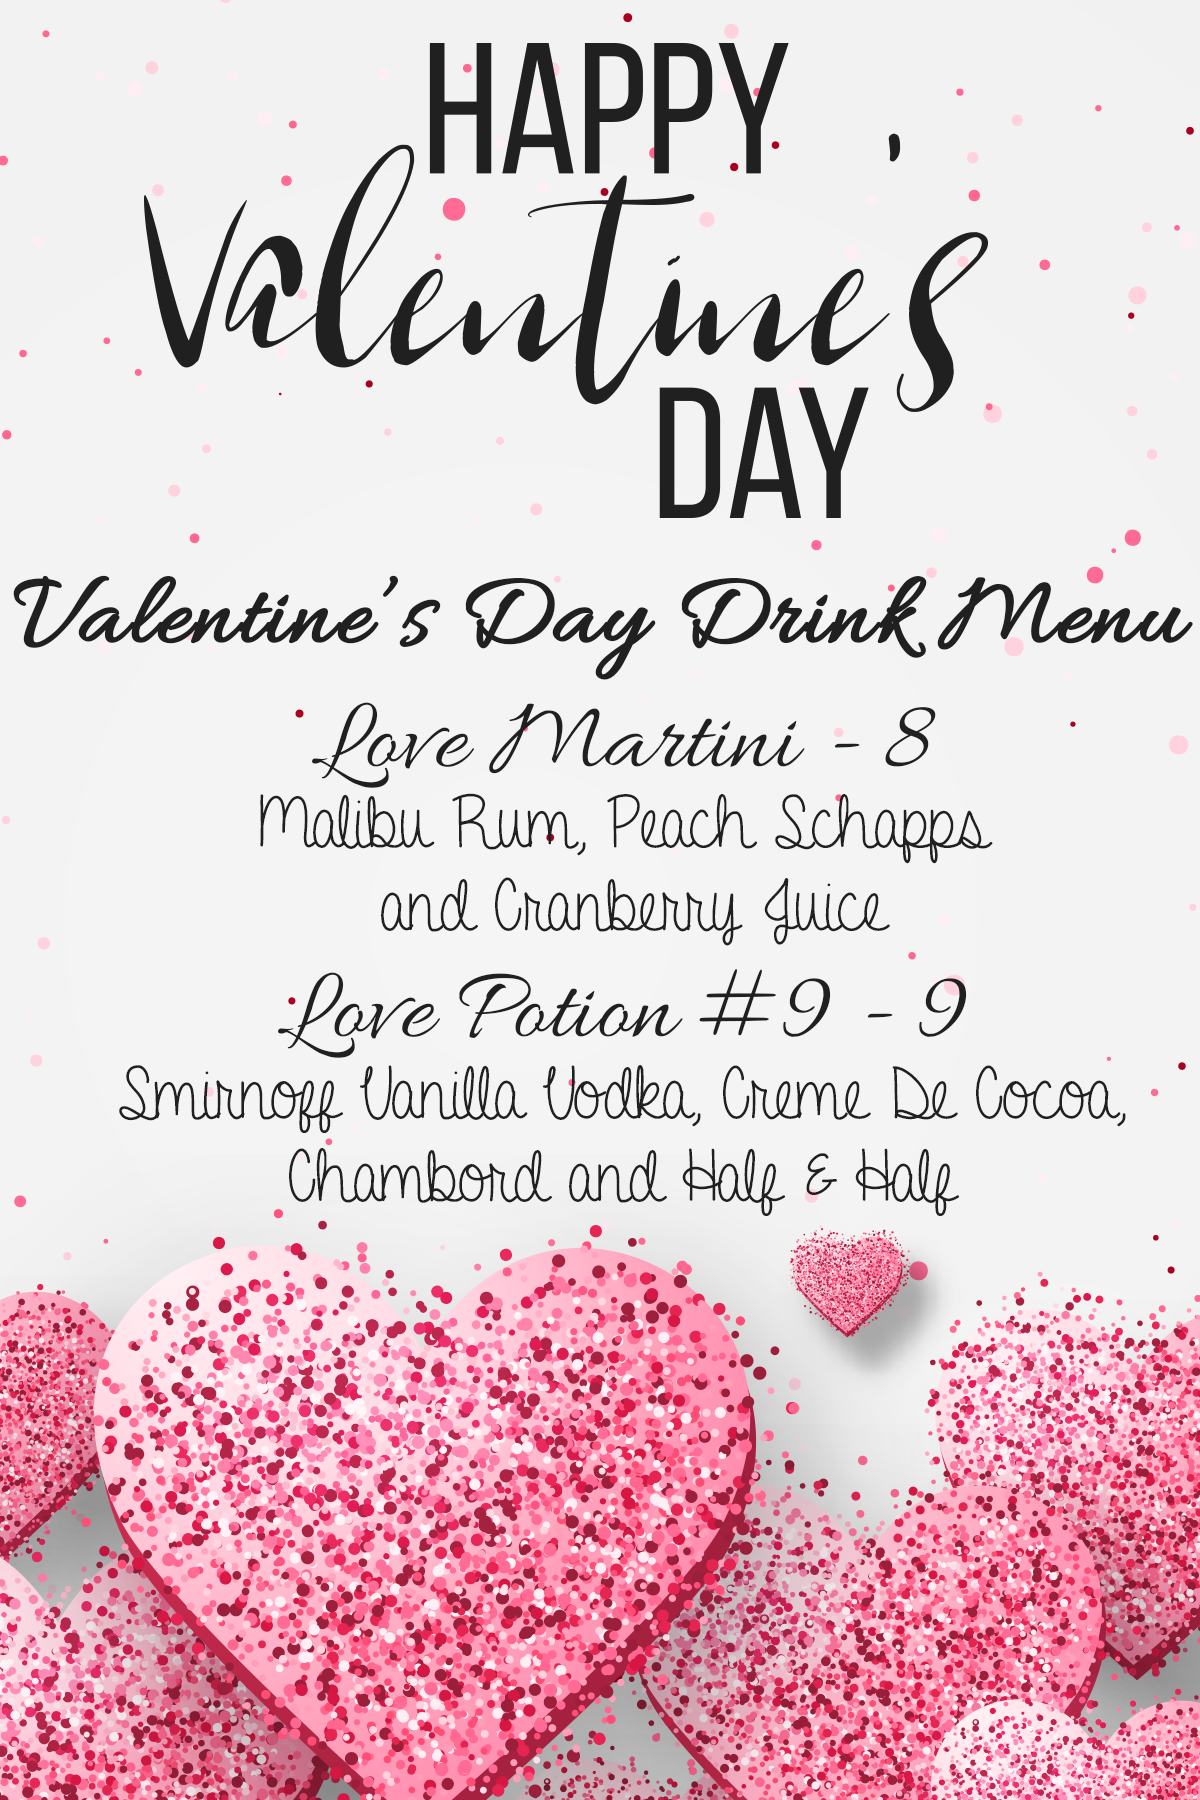 Happy Valentine's Day. Valentine's Day Drink Menu. Love Martini - 8: Malibu Rum, Peach Schnapps and Cranberry Juice. Love Potion #9 - 9: Smirnoff Vanilla Vodka, Creme De Cocoa, Chambord and Half & Half